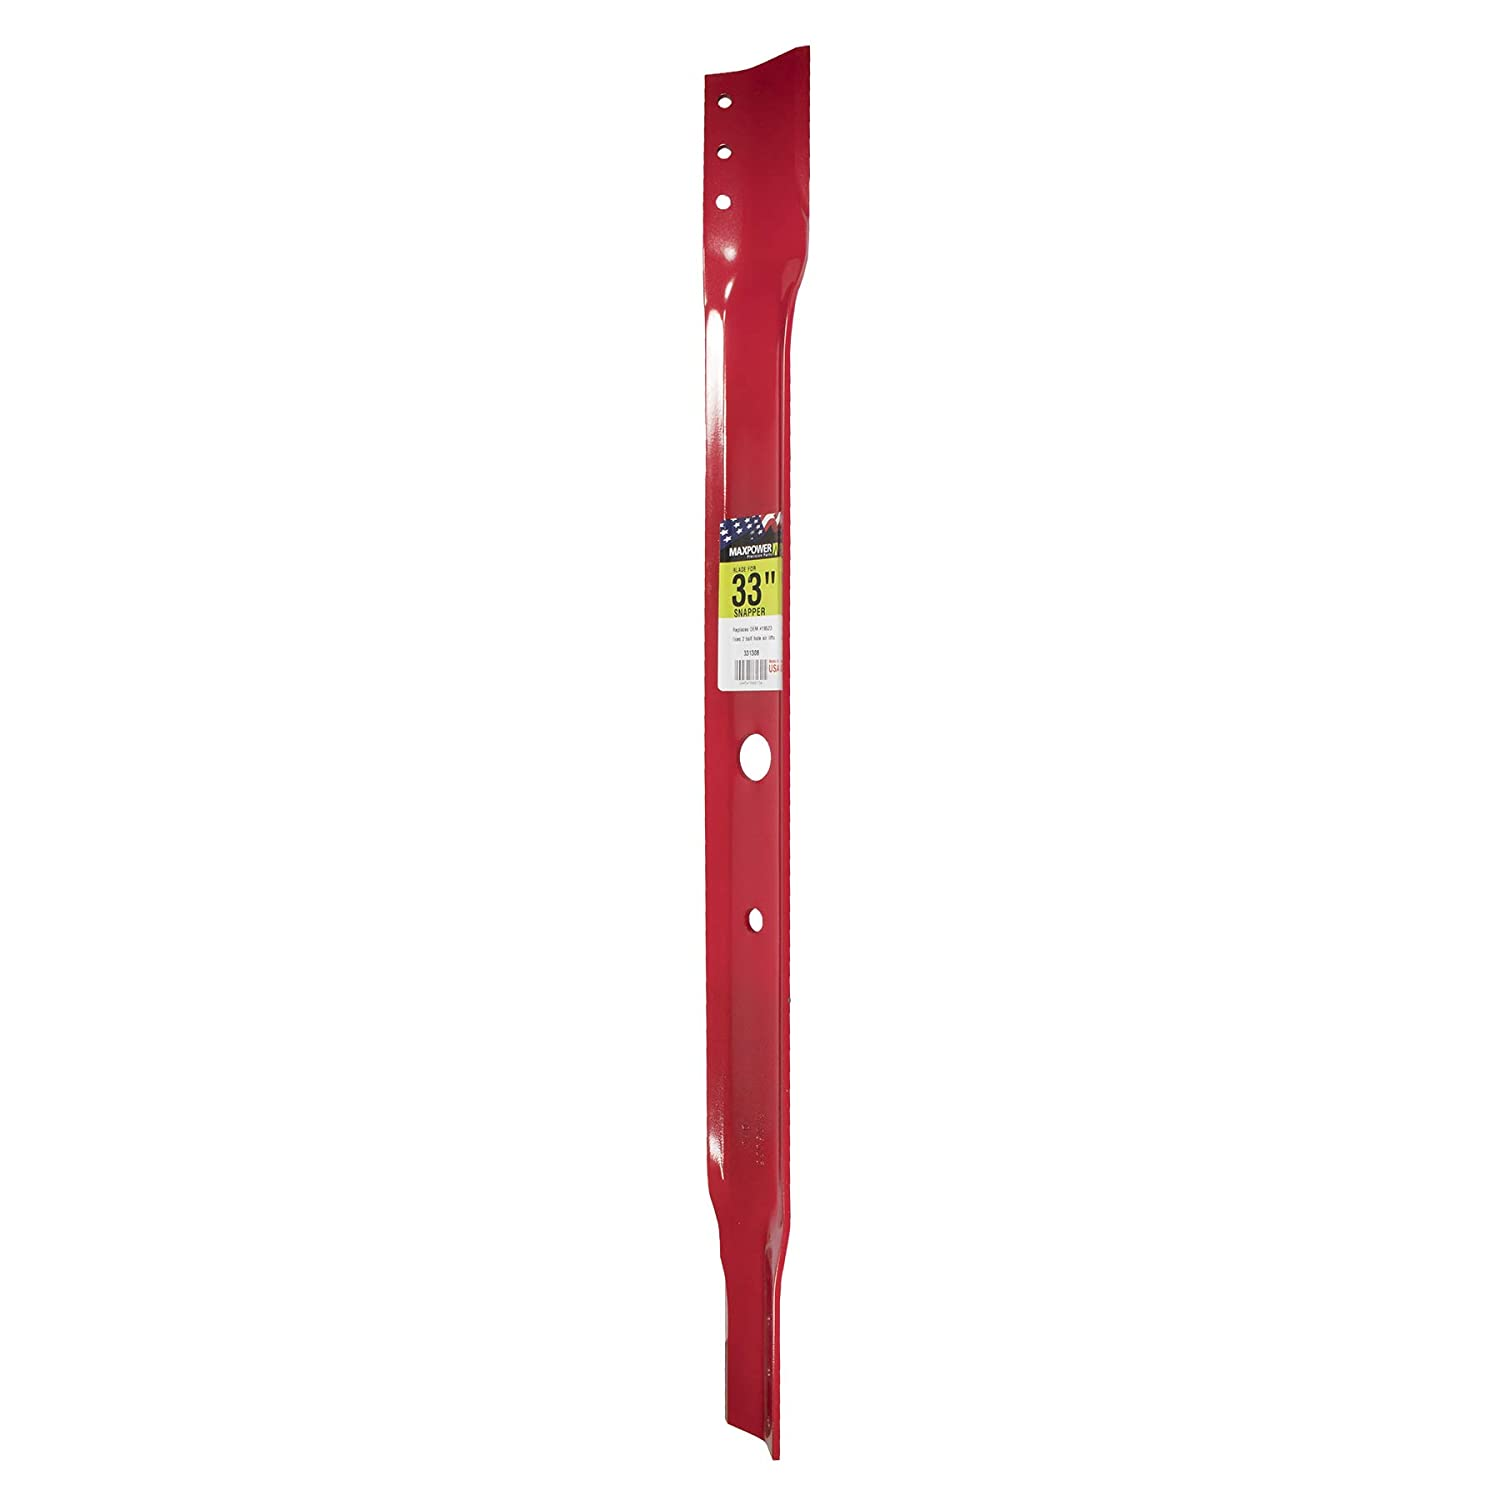 "MaxPower 331308 Mower Blade for 33"" Cut Snapper Replaces 19523, 7019523"